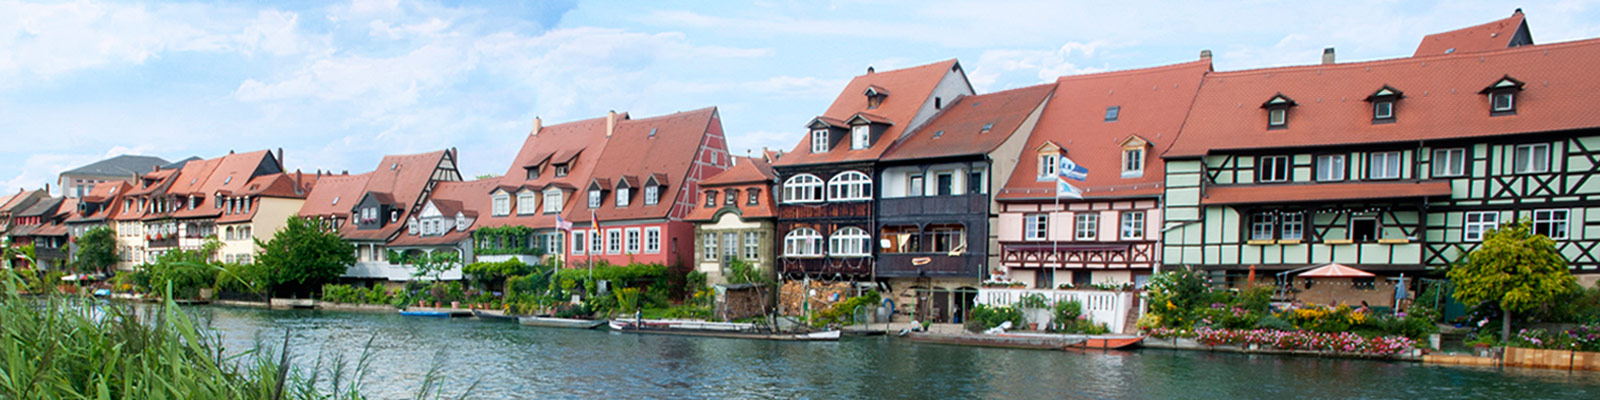 Houses lining canal in Germany